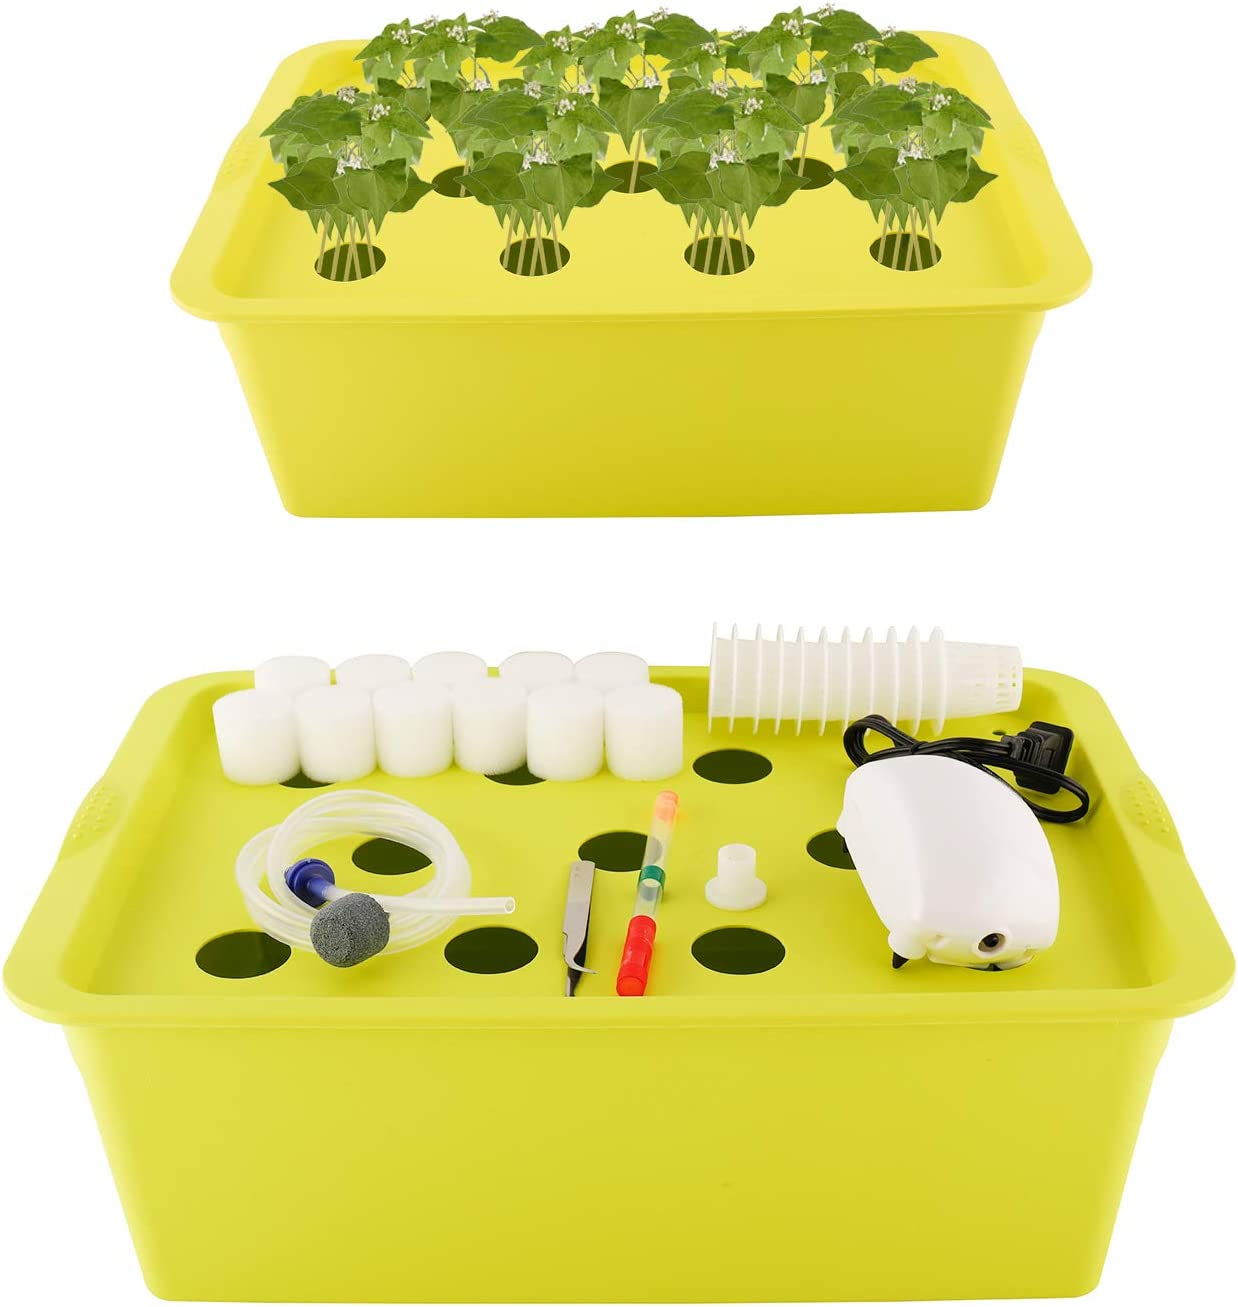 Homend Indoor Hydroponic Grow Kit with Bubble Stone, 11 Plant Sites (Holes) Bucket,Buoy,Air Pump, Planting Sponges - Best Indoor Herb Garden for Plants - Grow Fast at Home (Green)